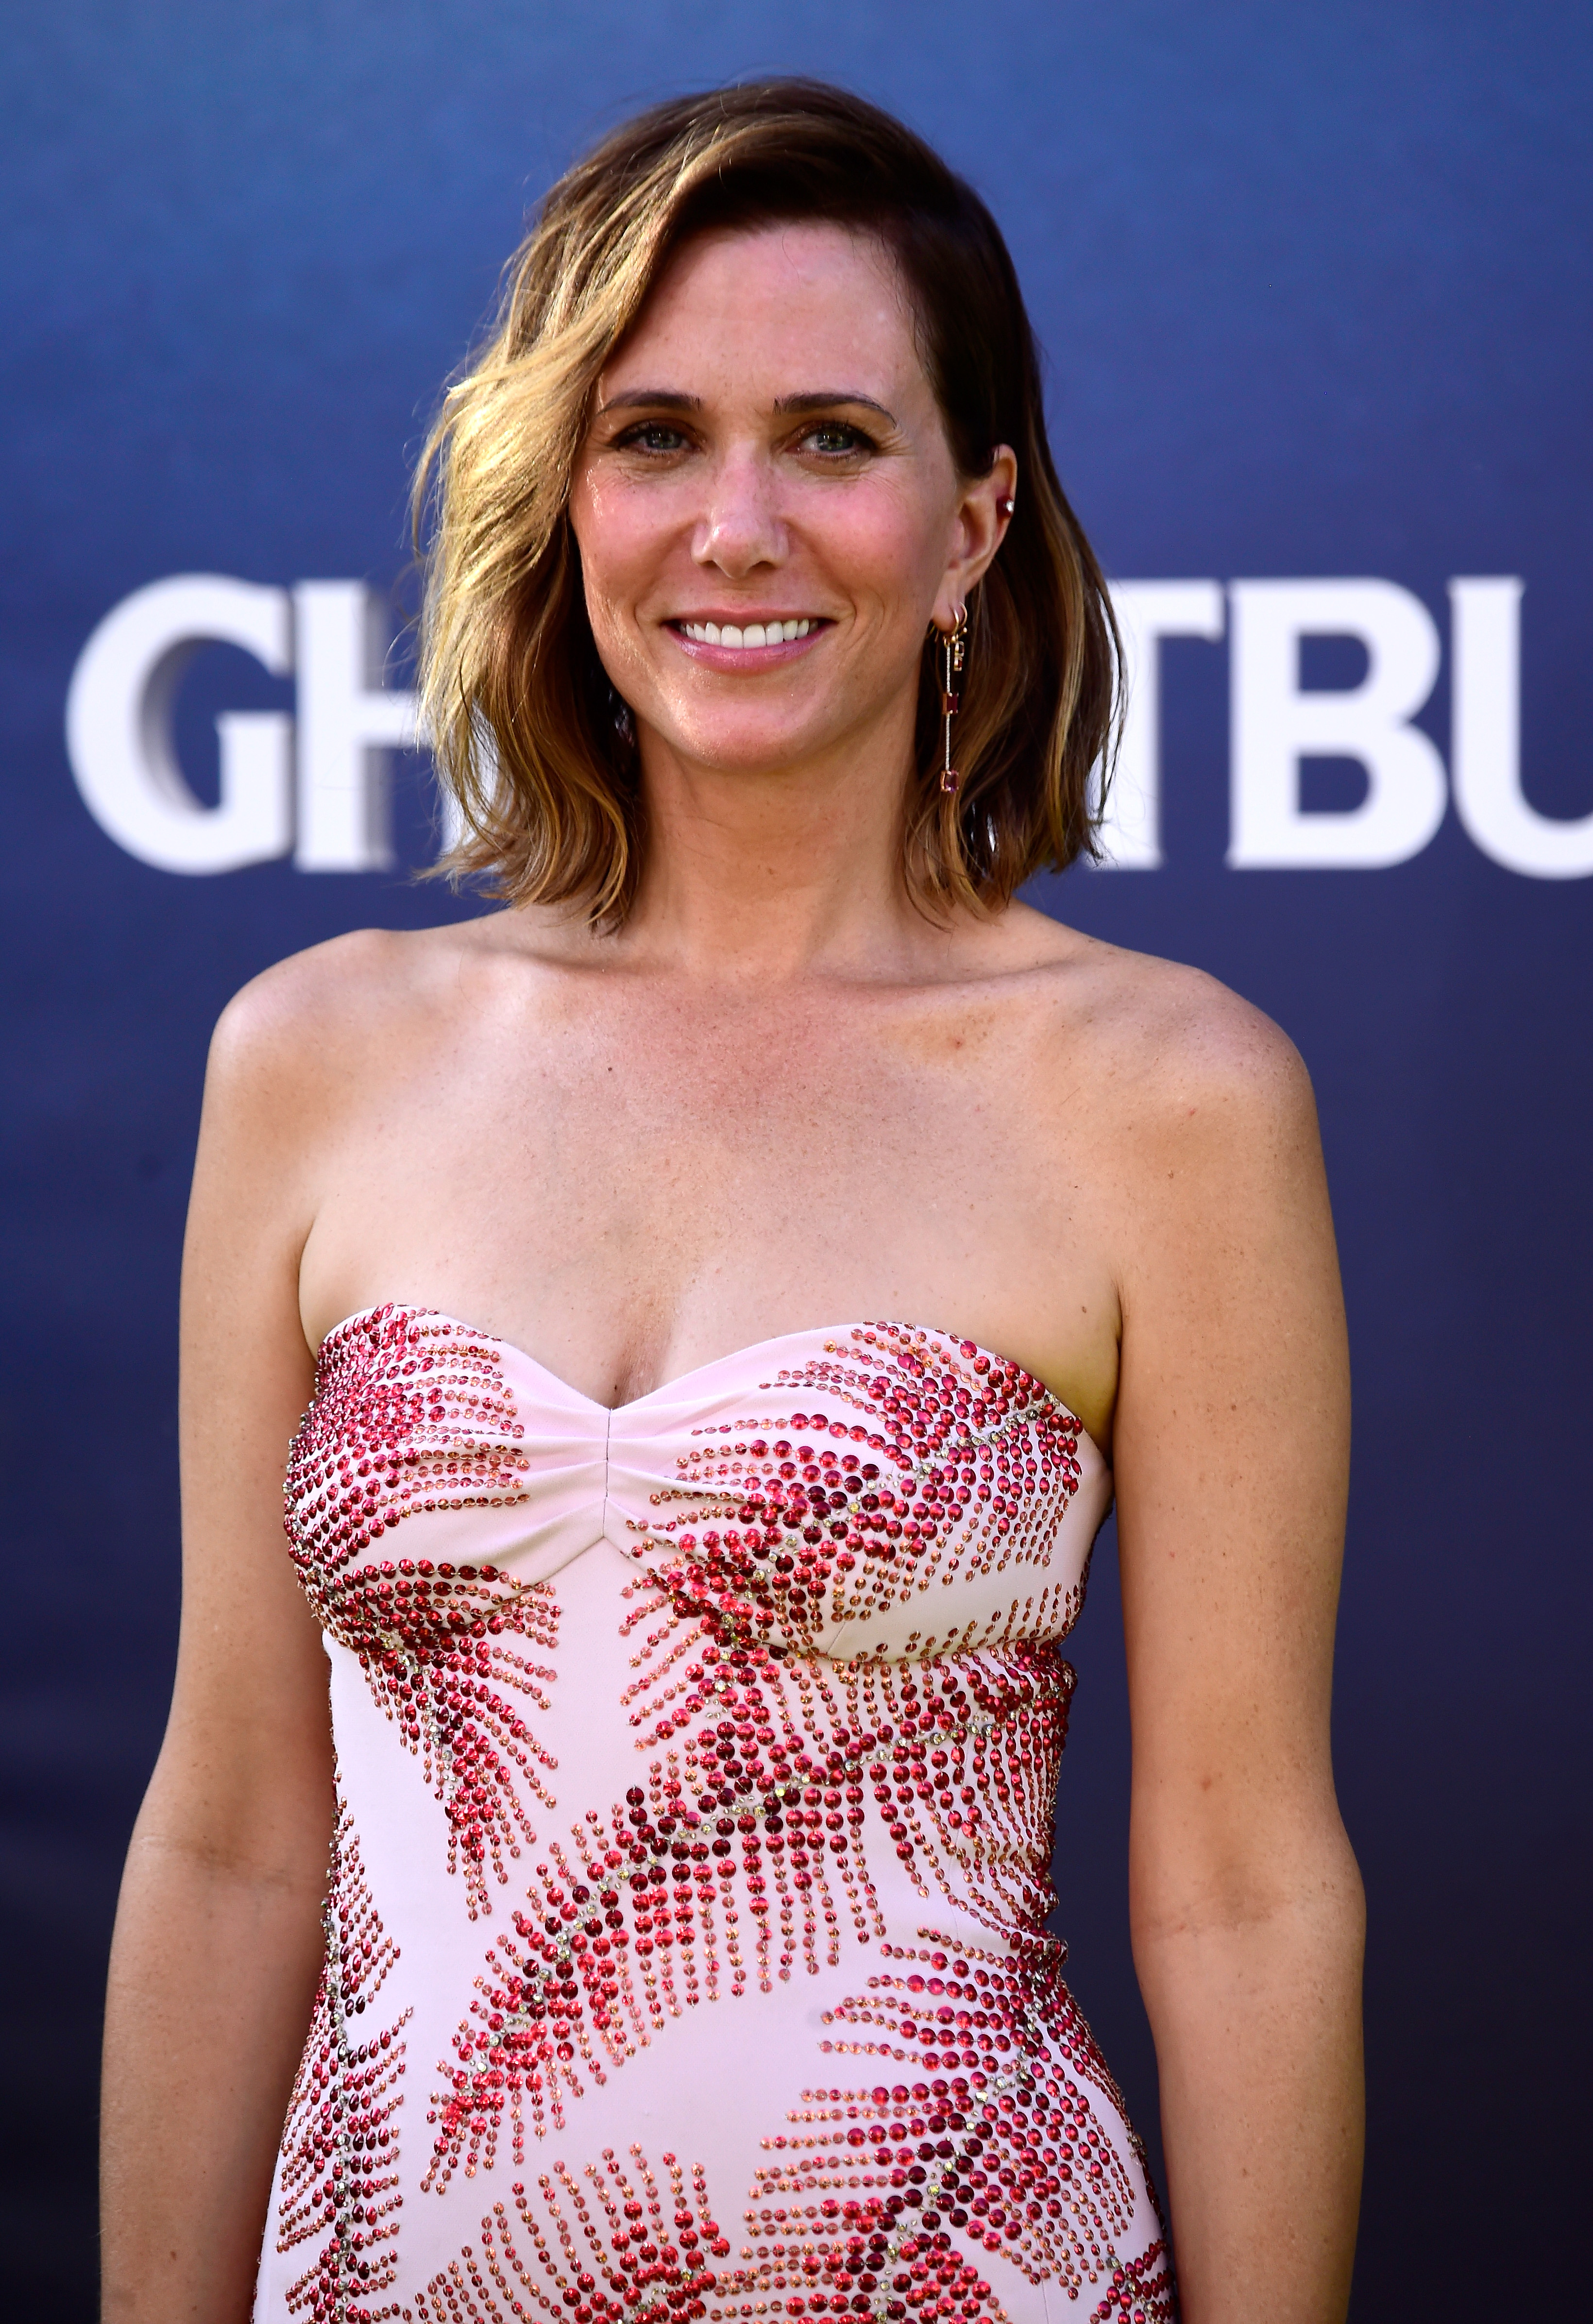 Kristen Wiig Just Debuted A Short Blonde Pixie Cut In Snl